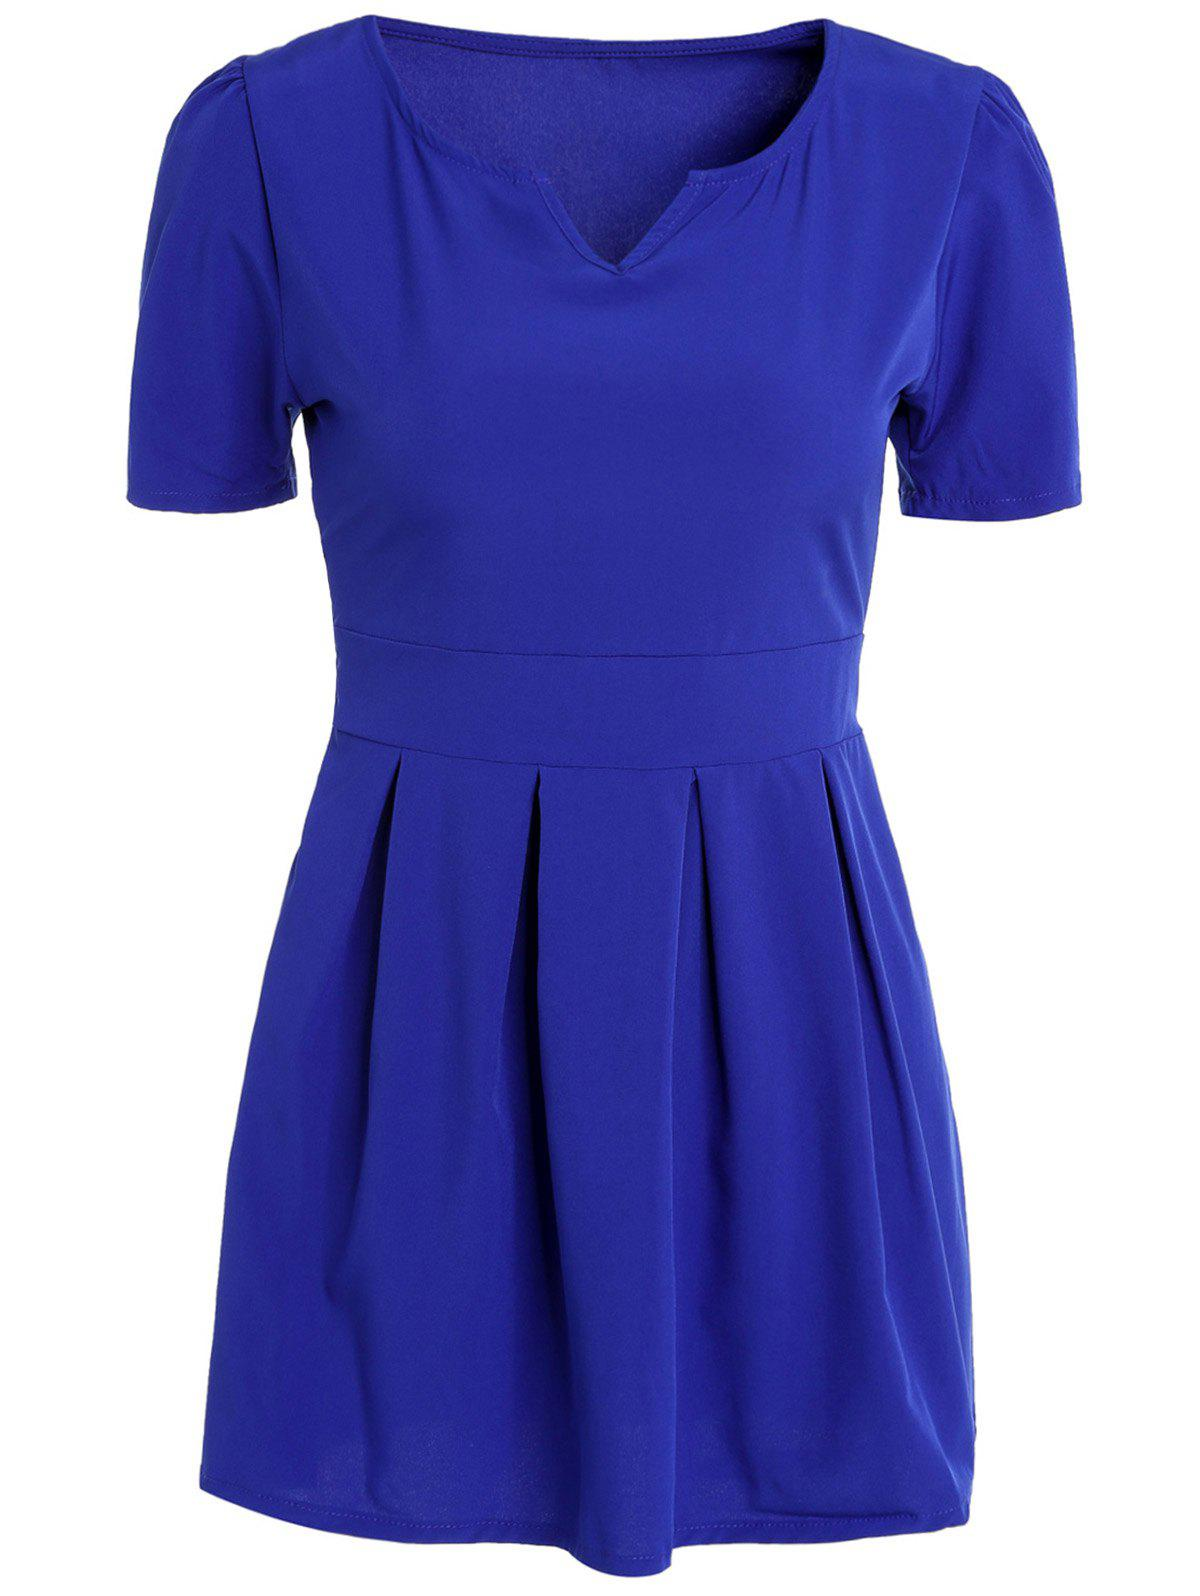 Chic Solid Color V-Neck Short Sleeve High Waist Pleated Mini Ball Dress For Women